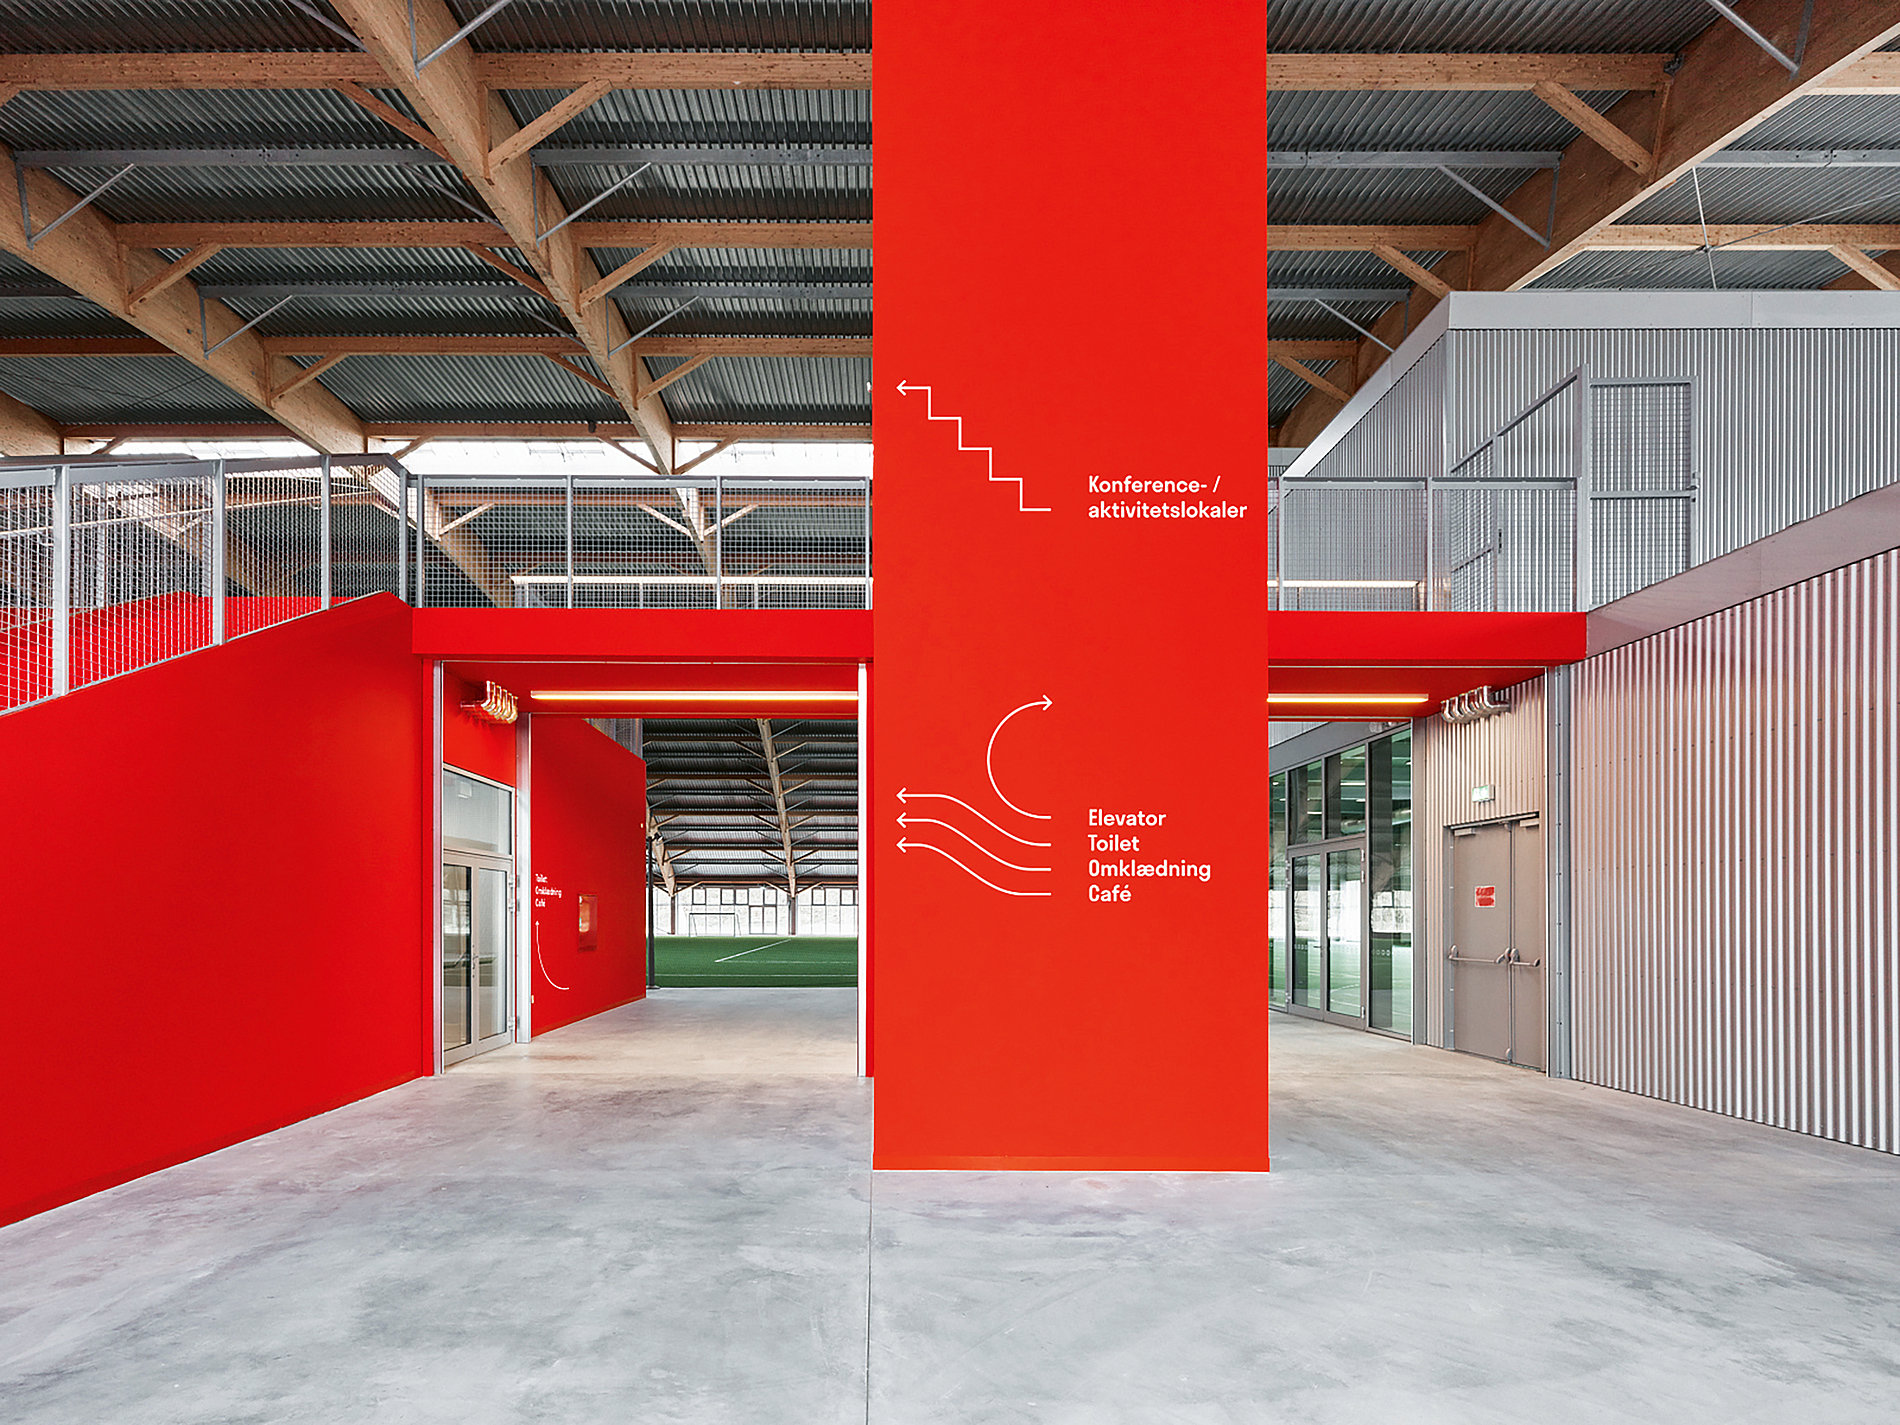 Hafnia-Hallen — All Fun and Games | Red Dot Design Award